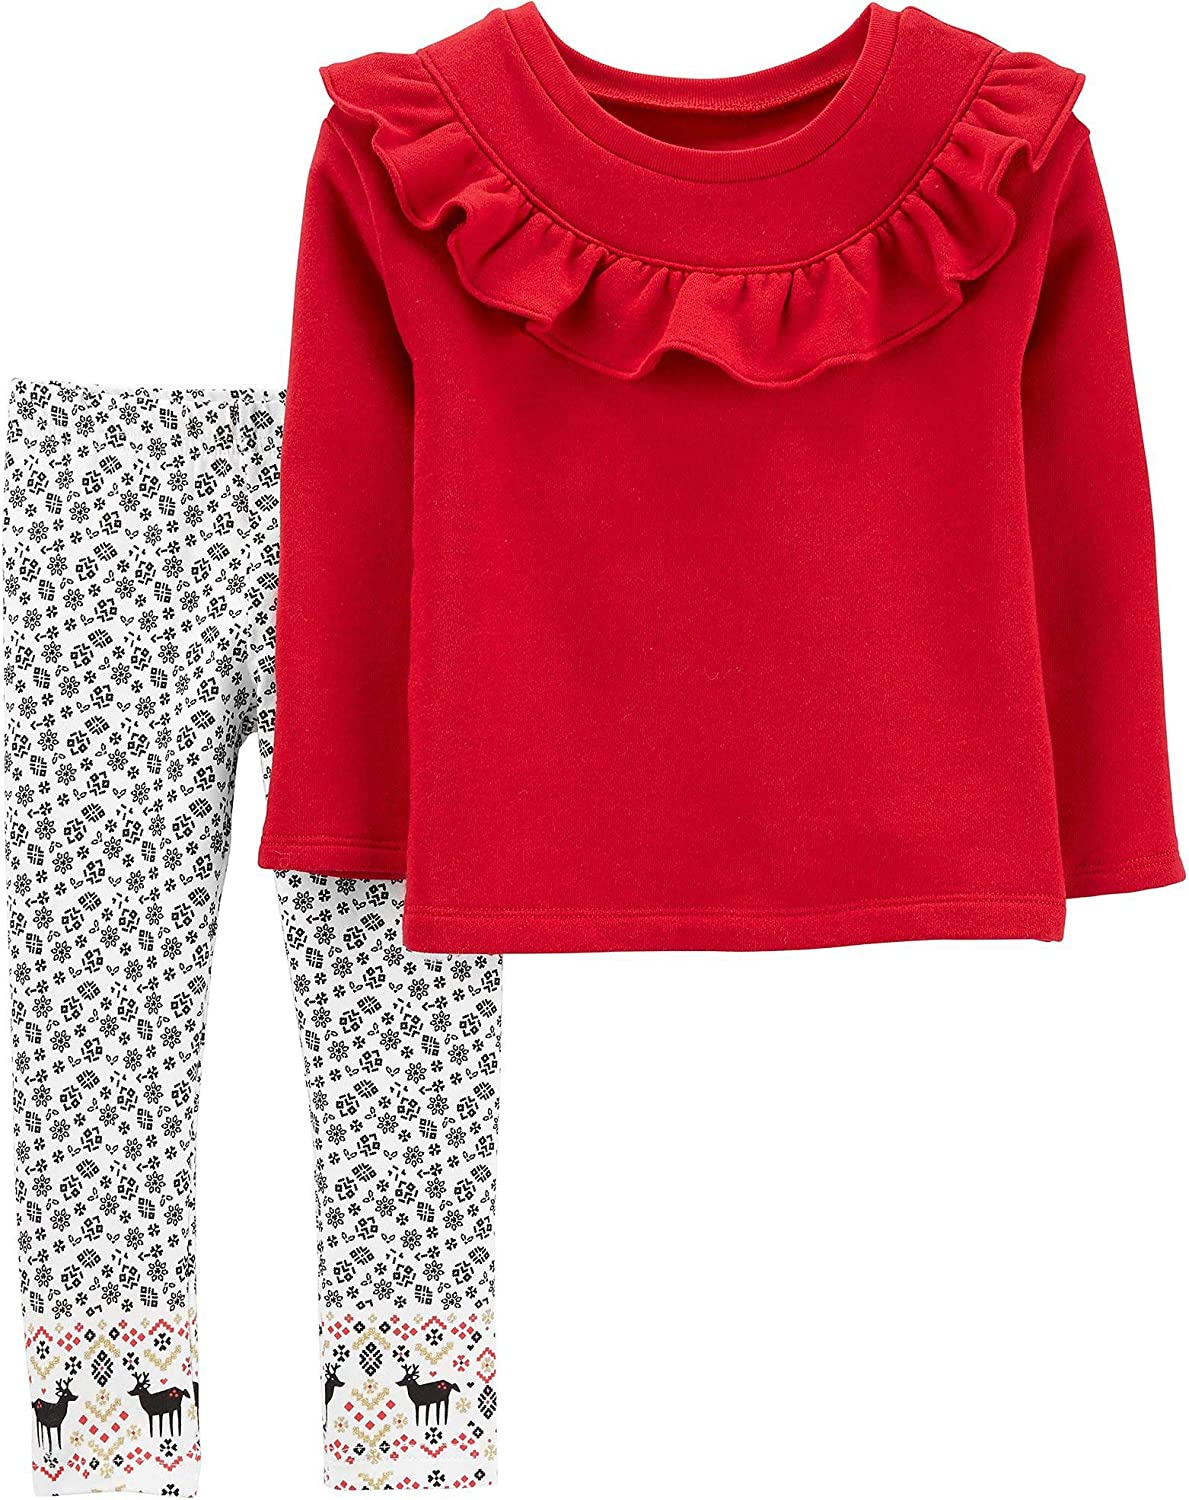 Carters Toddler Reindeer Ruffle 2-Piece Leggings Set Outfit - Red/White/Multi 9 Months